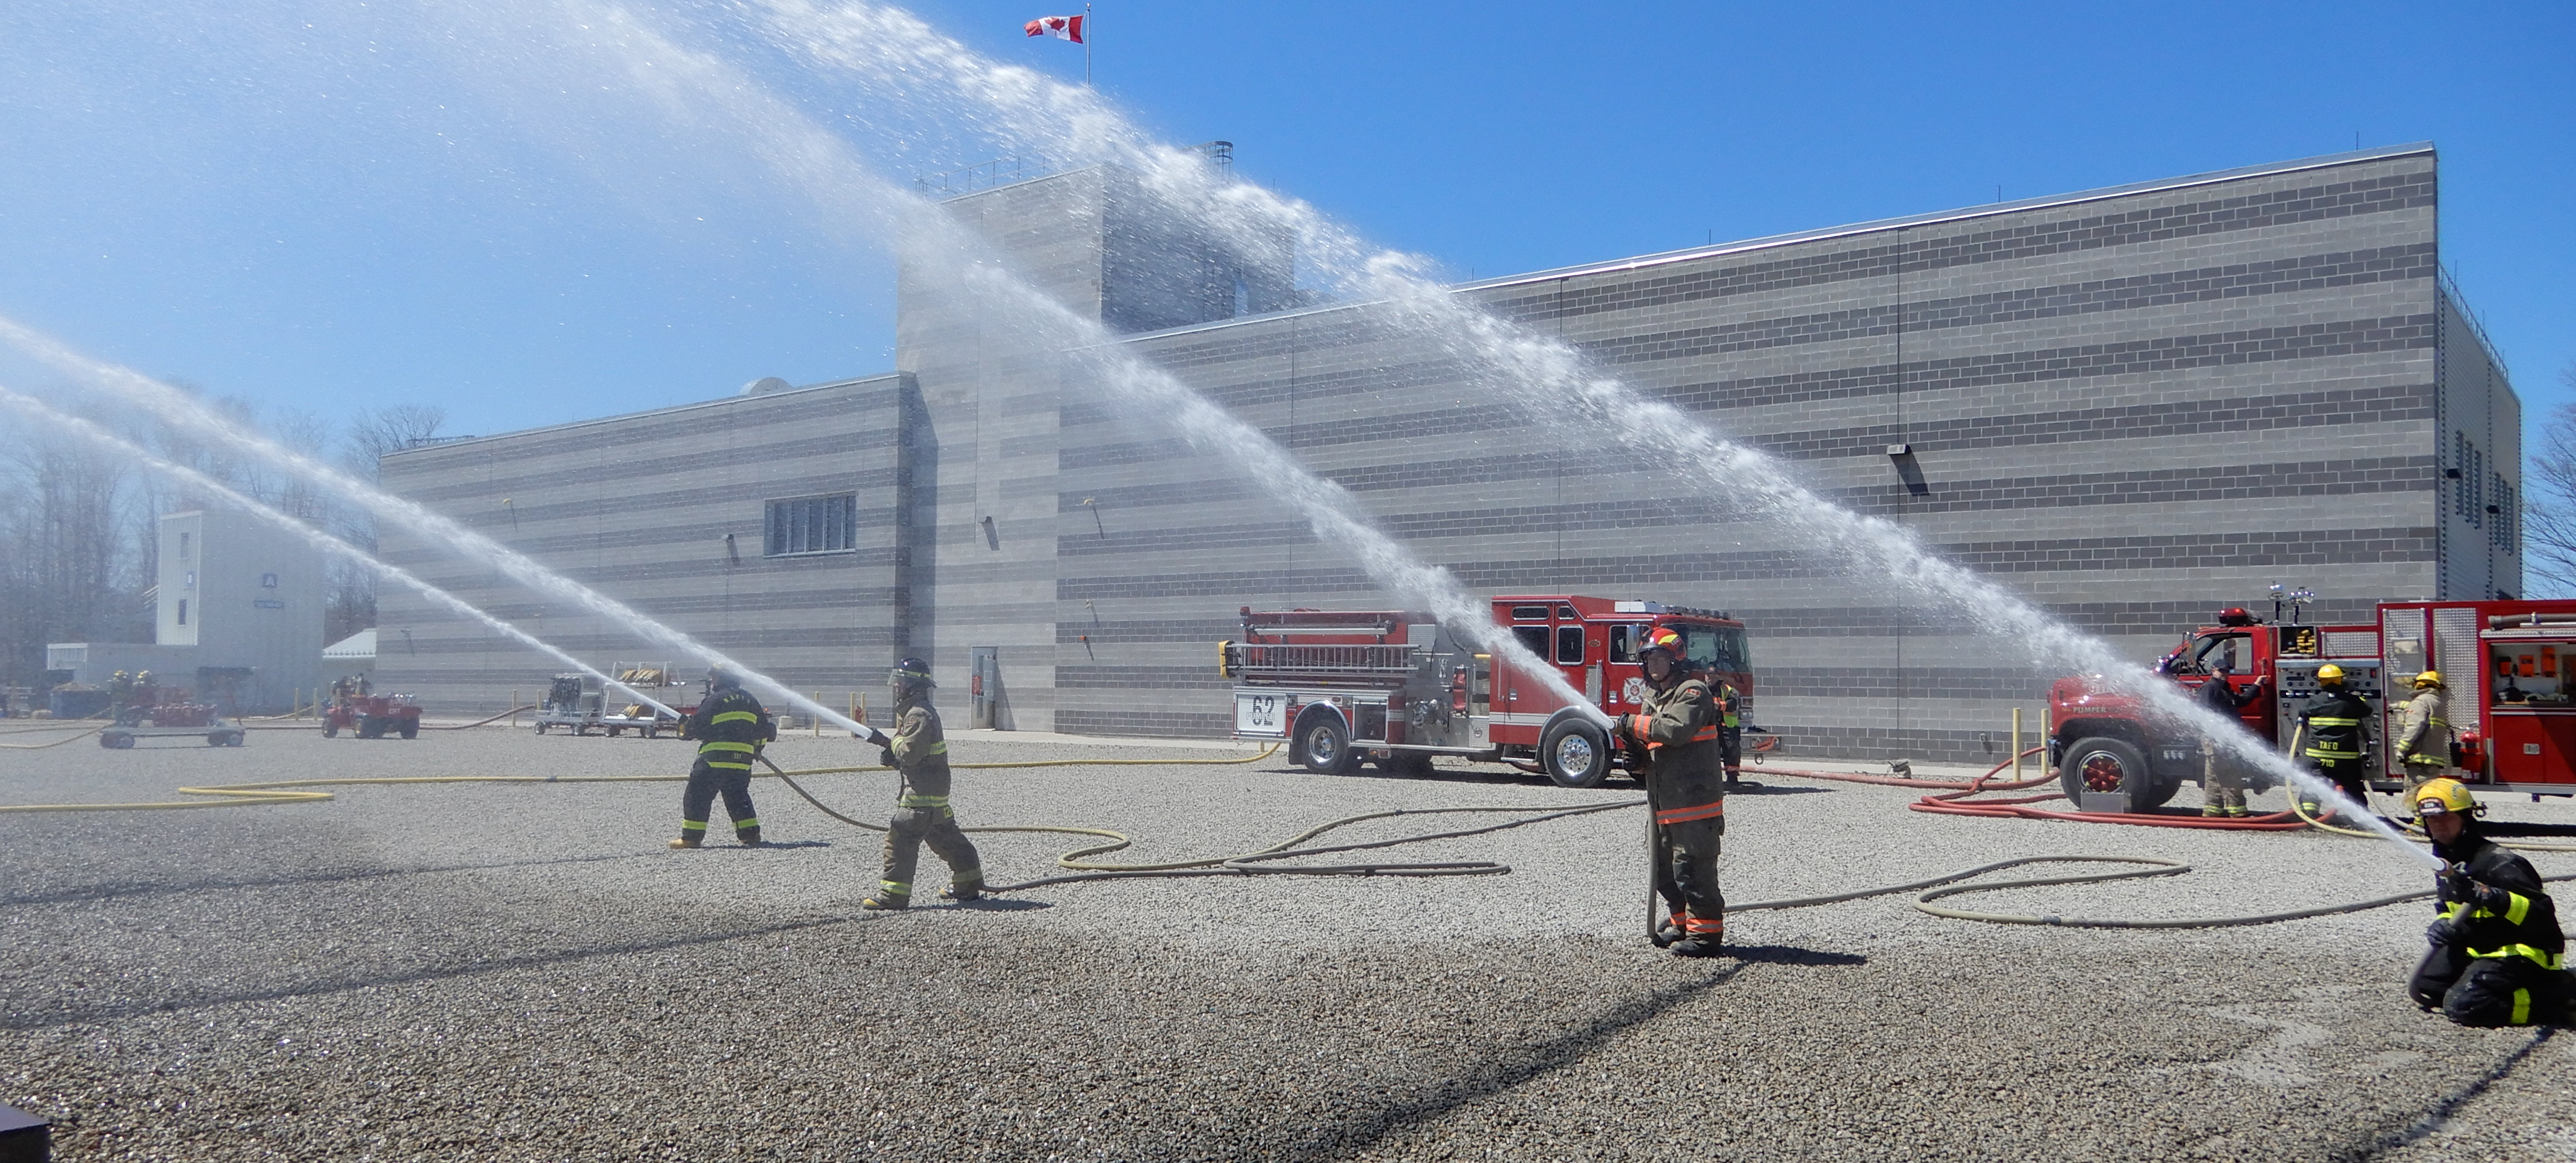 Firefighters spray hoses during training